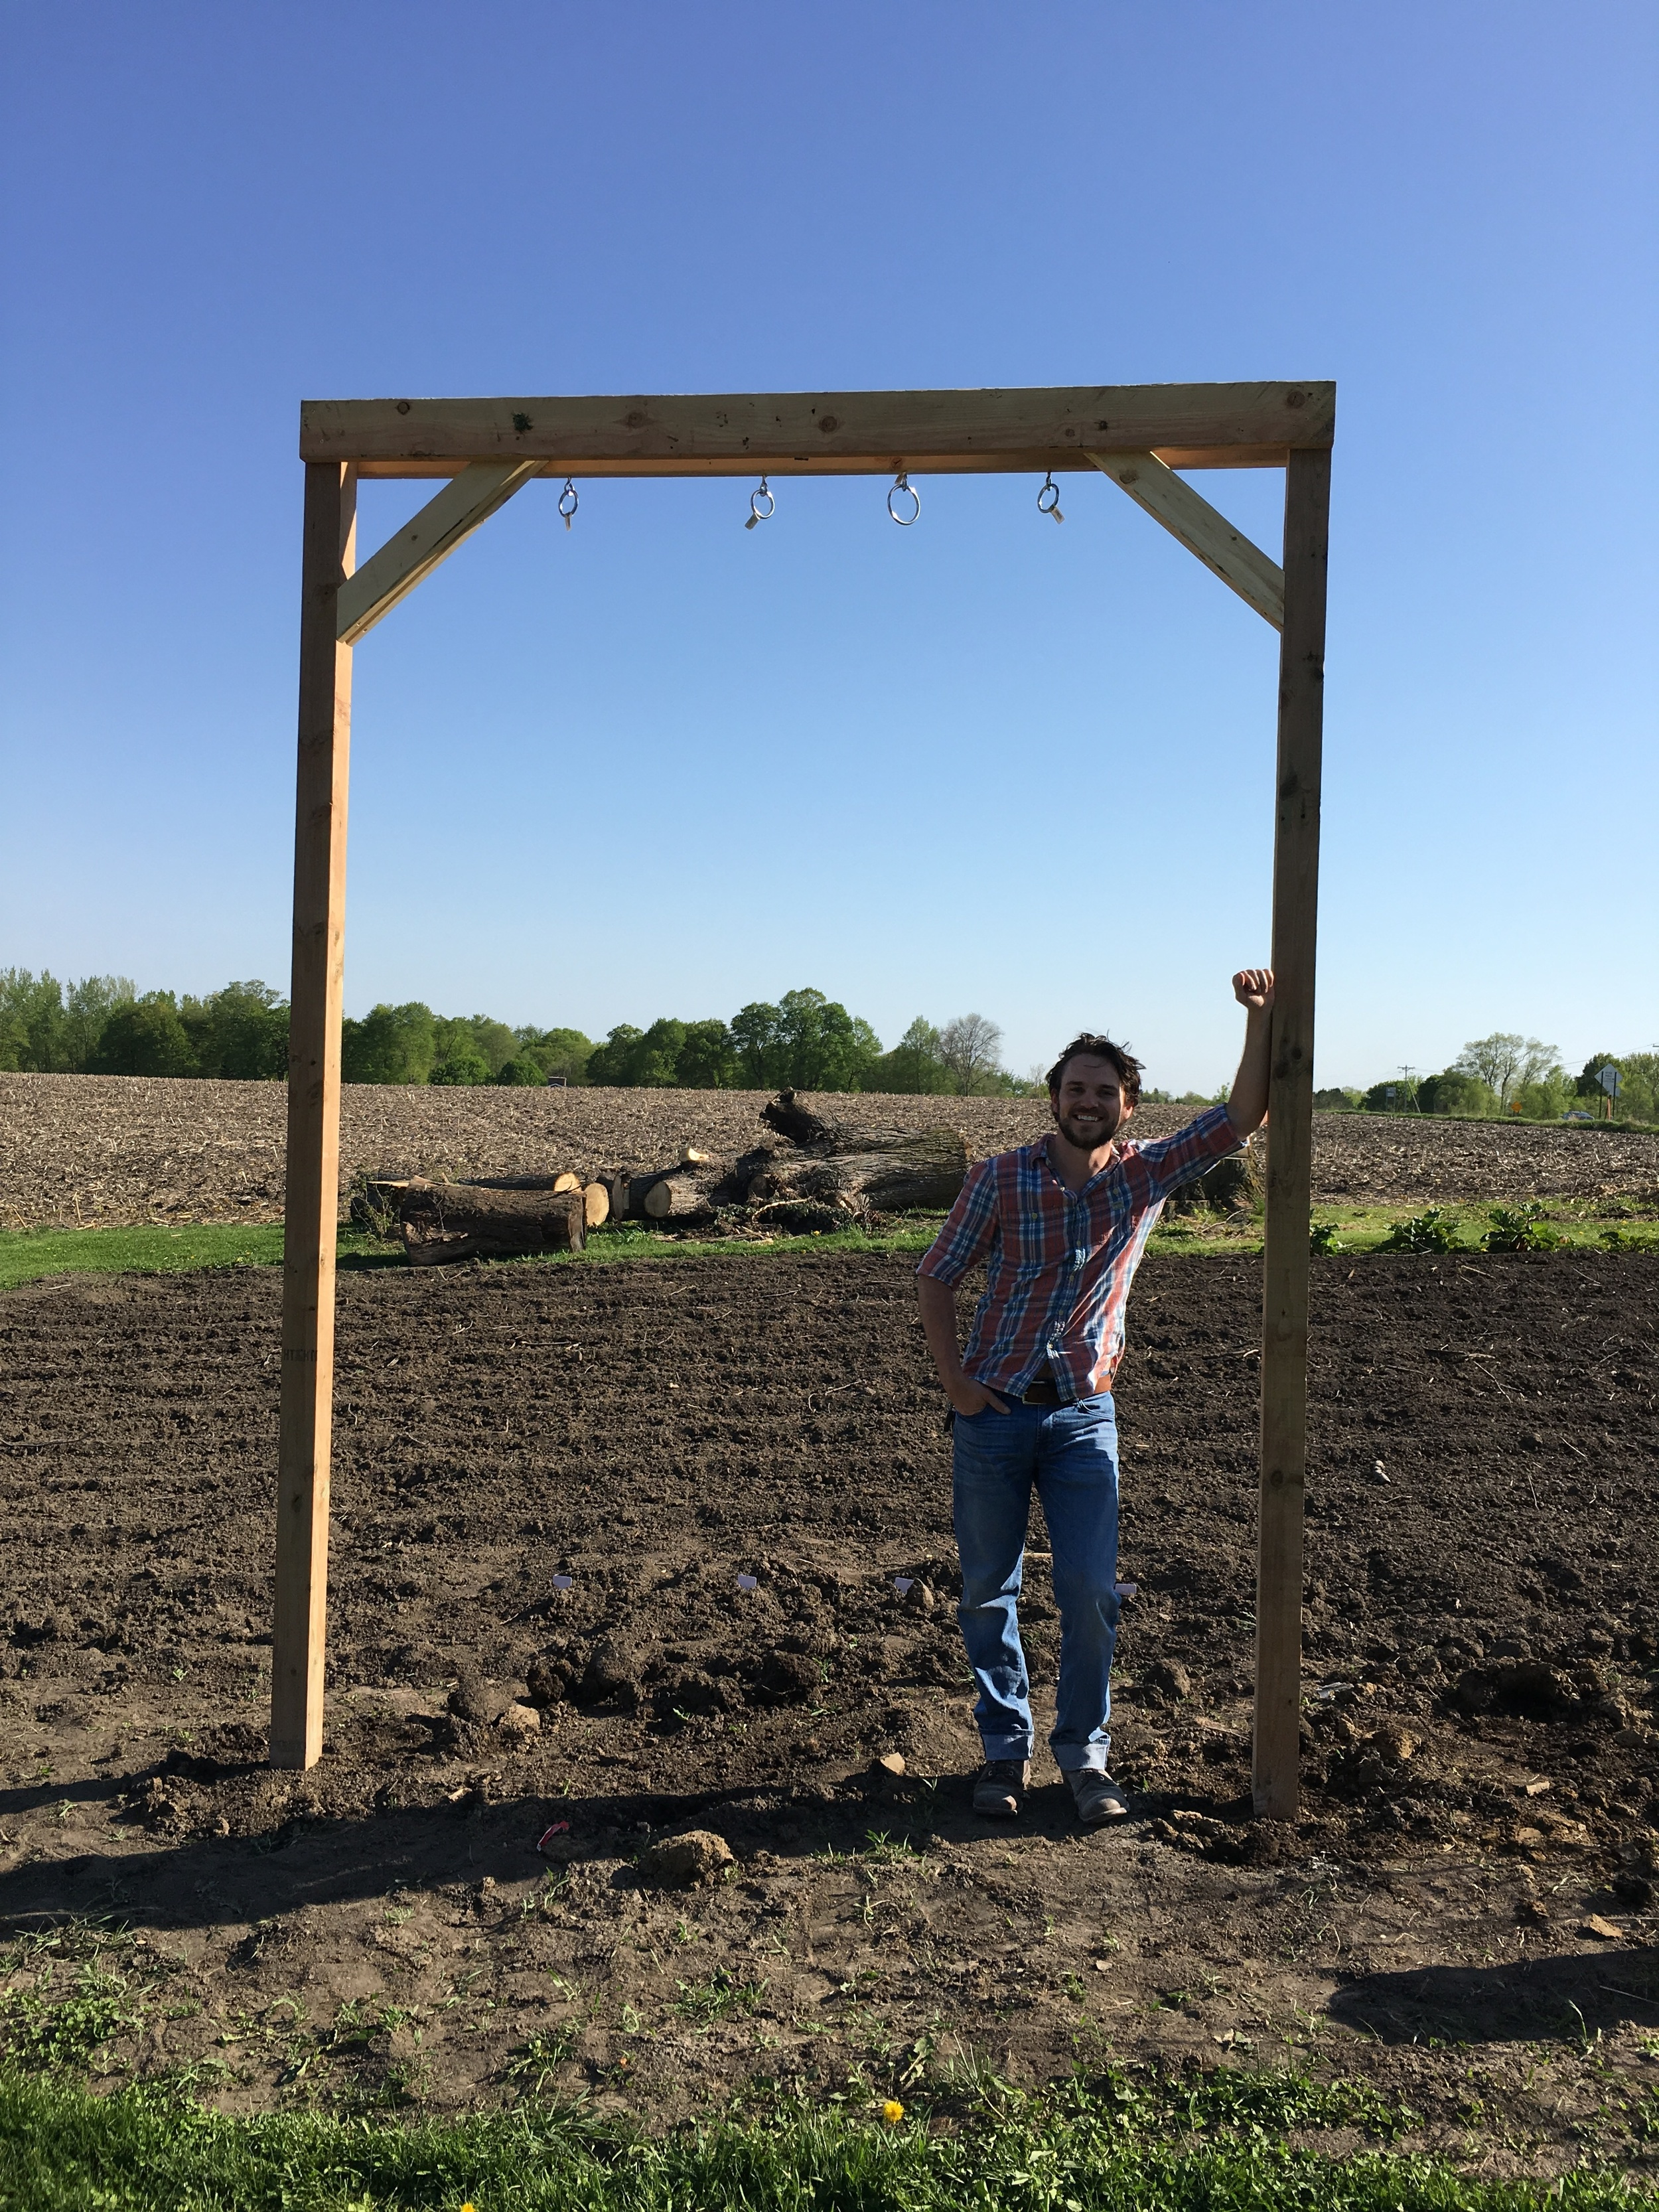 Thanks to the help of some very good friends, I was able to complete my hops trellis install. Anyone know a good home brewer that wants free hops?!